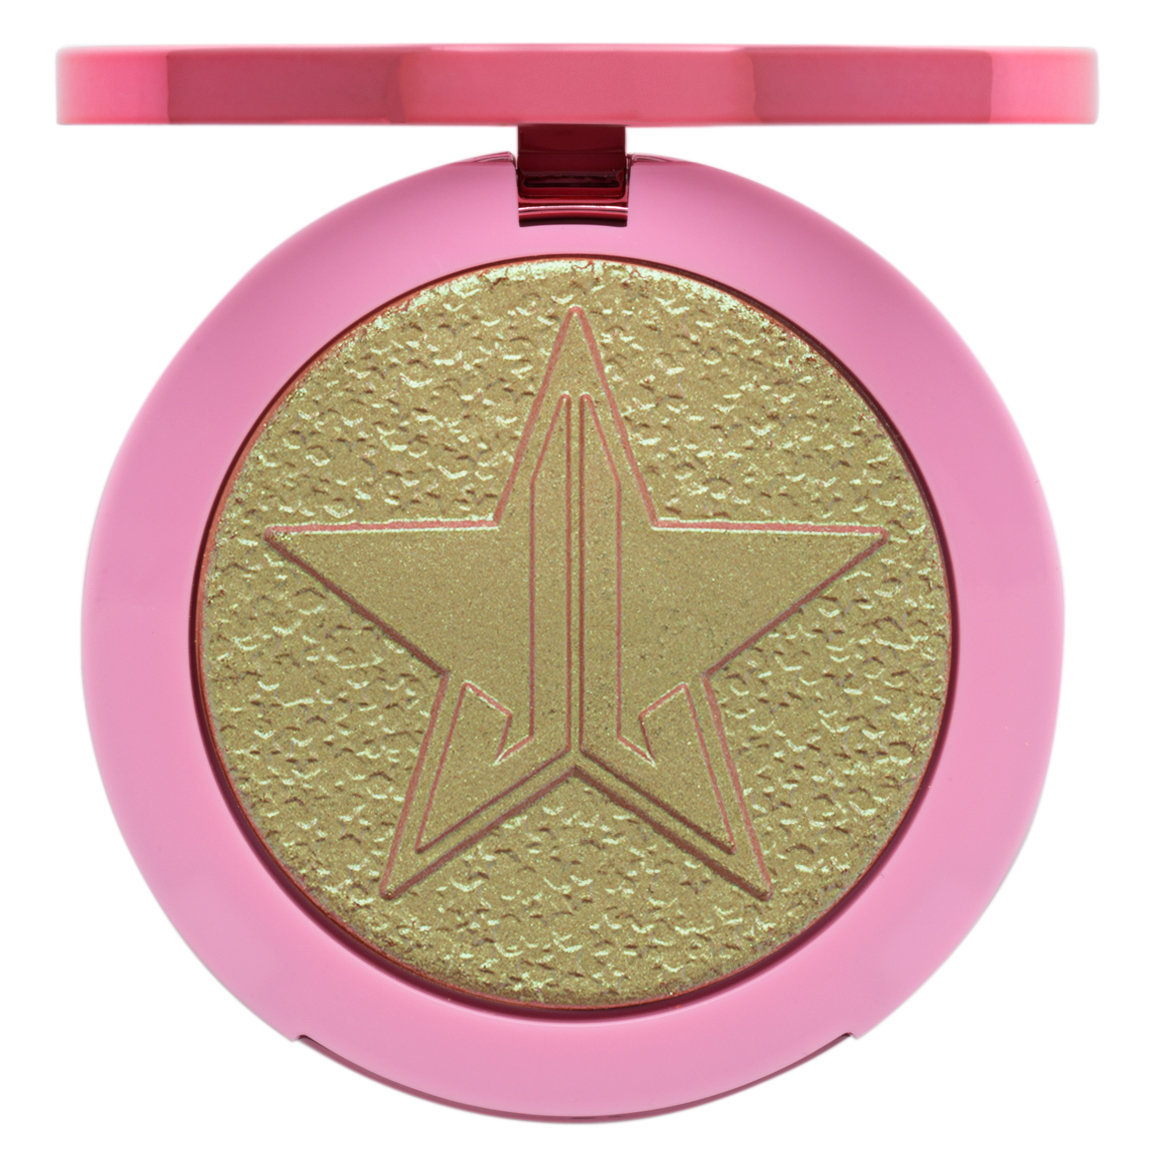 Jeffree Star Cosmetics Supreme Frost Money Honey product smear.